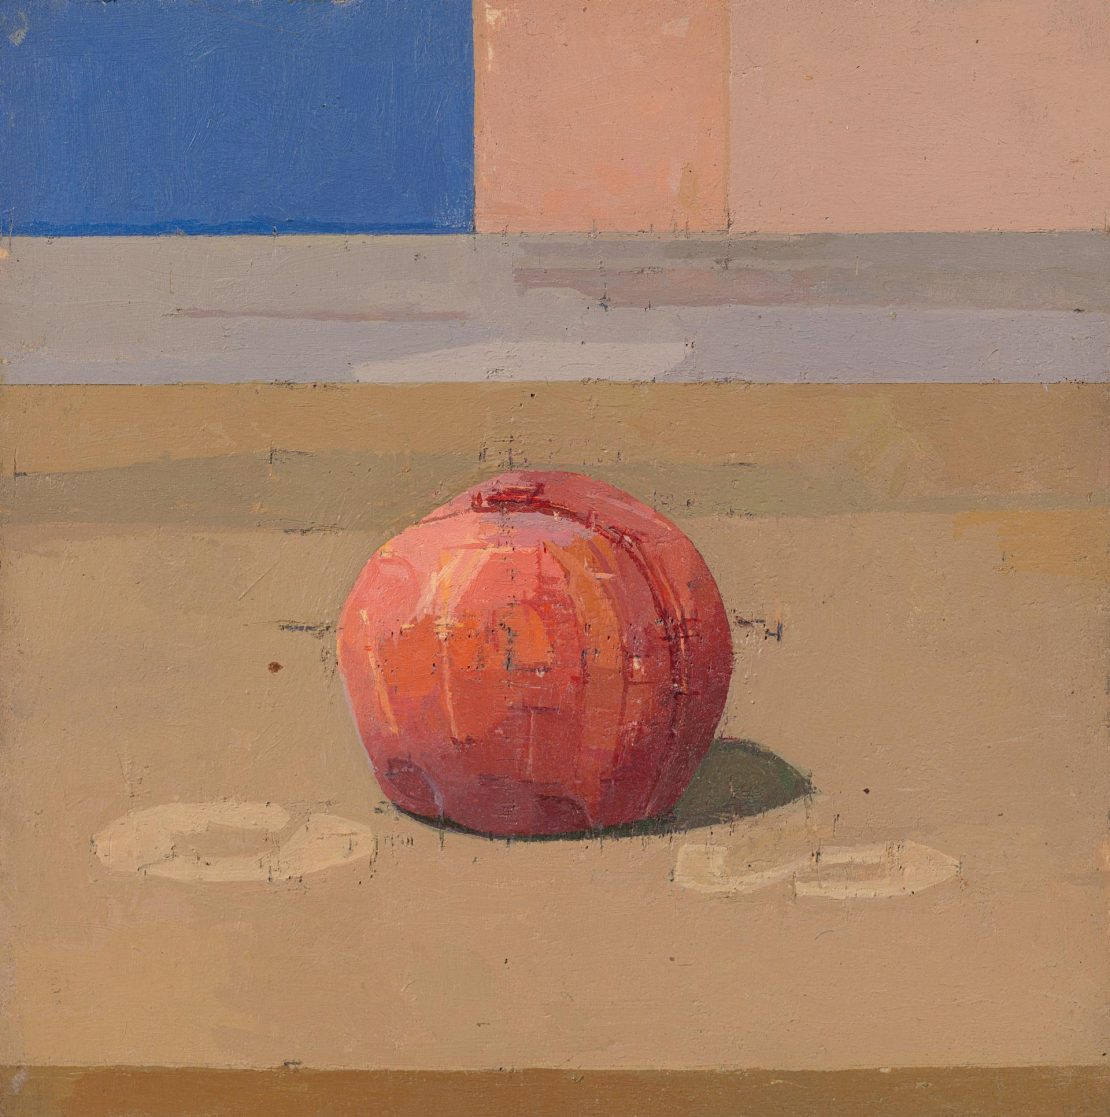 Two others have been there (1992) by Euan Uglow